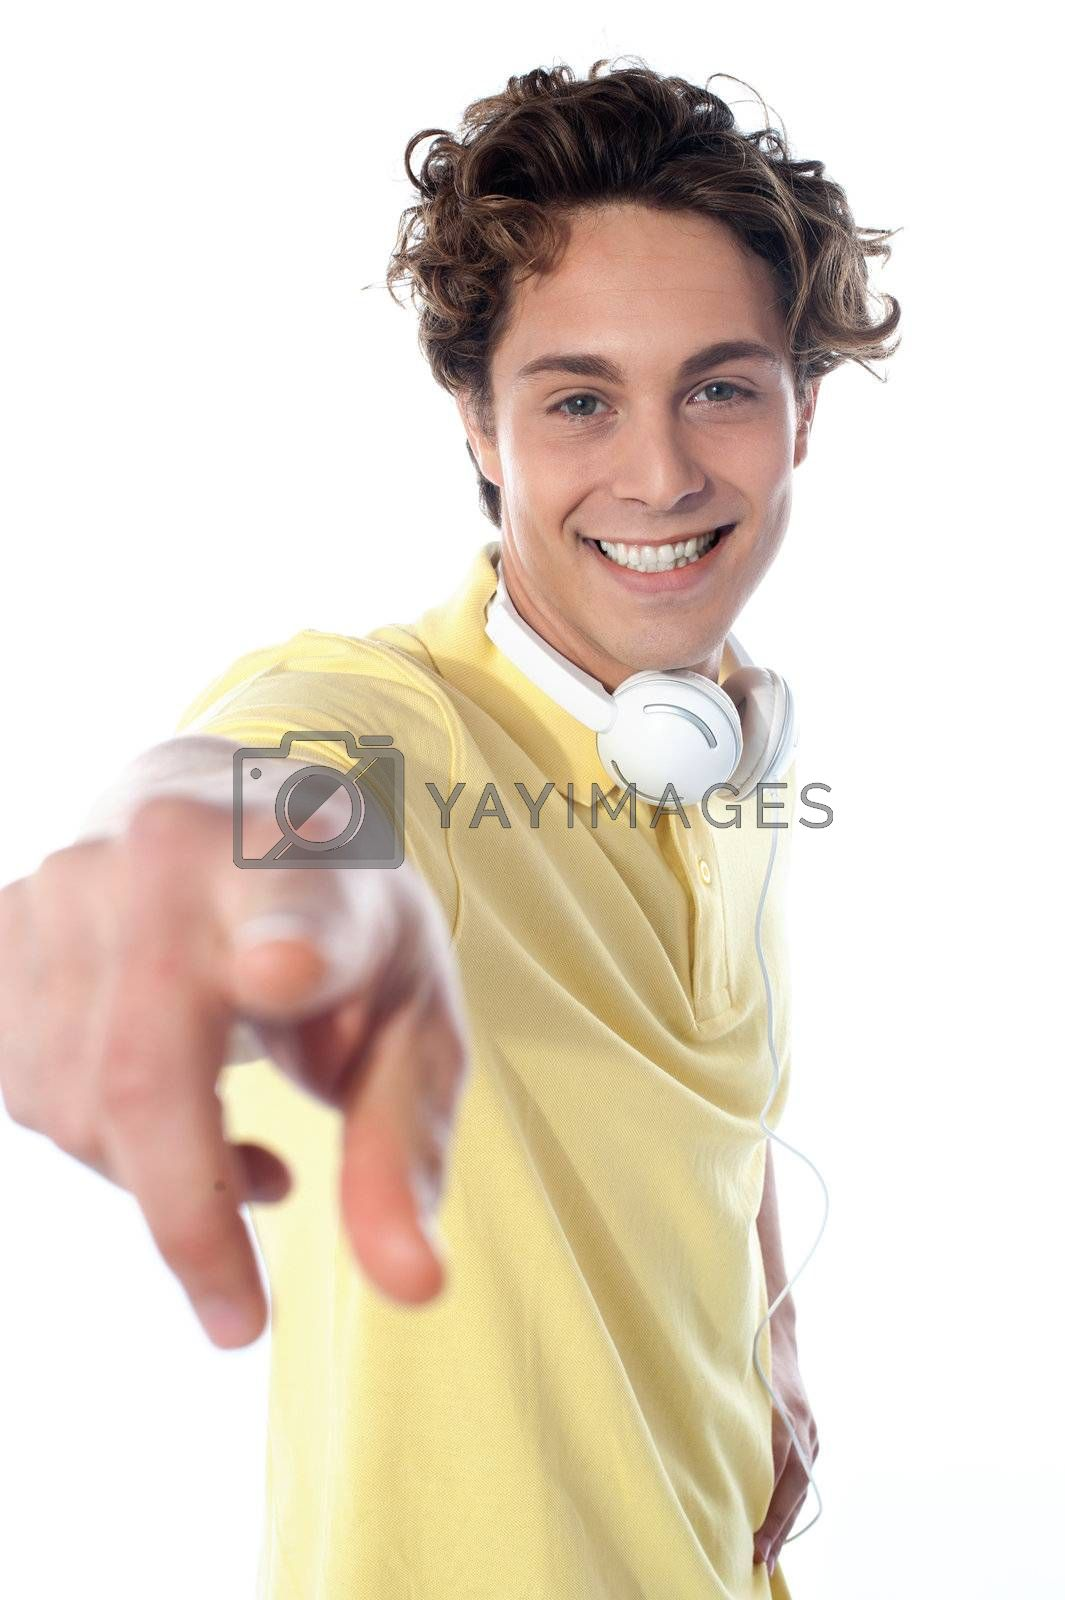 Guy with headphones enjoying music, pointing at you